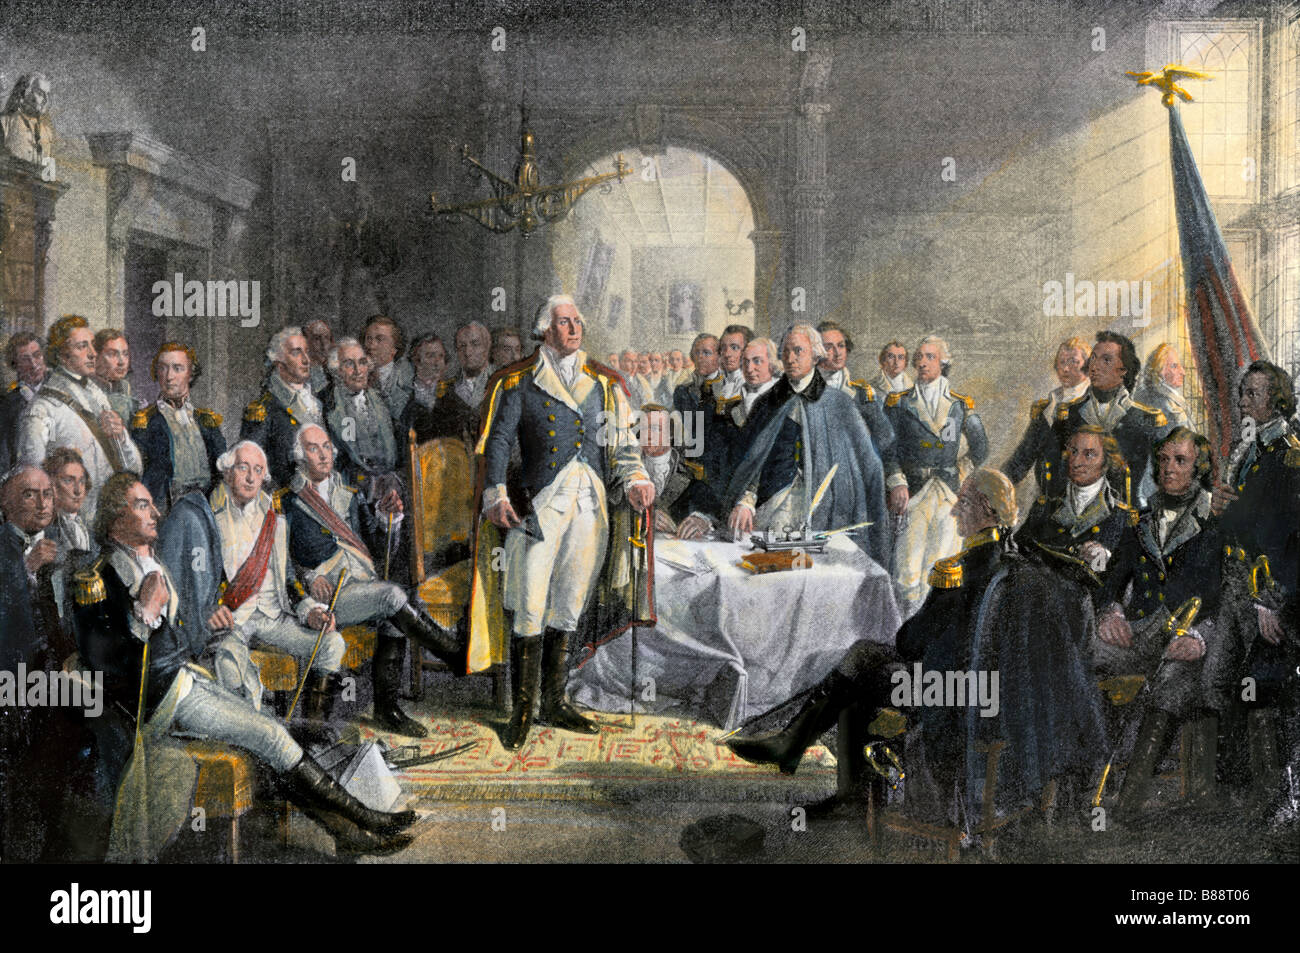 George Washington and his generals during the American Revolution. Hand-colored engraving - Stock Image